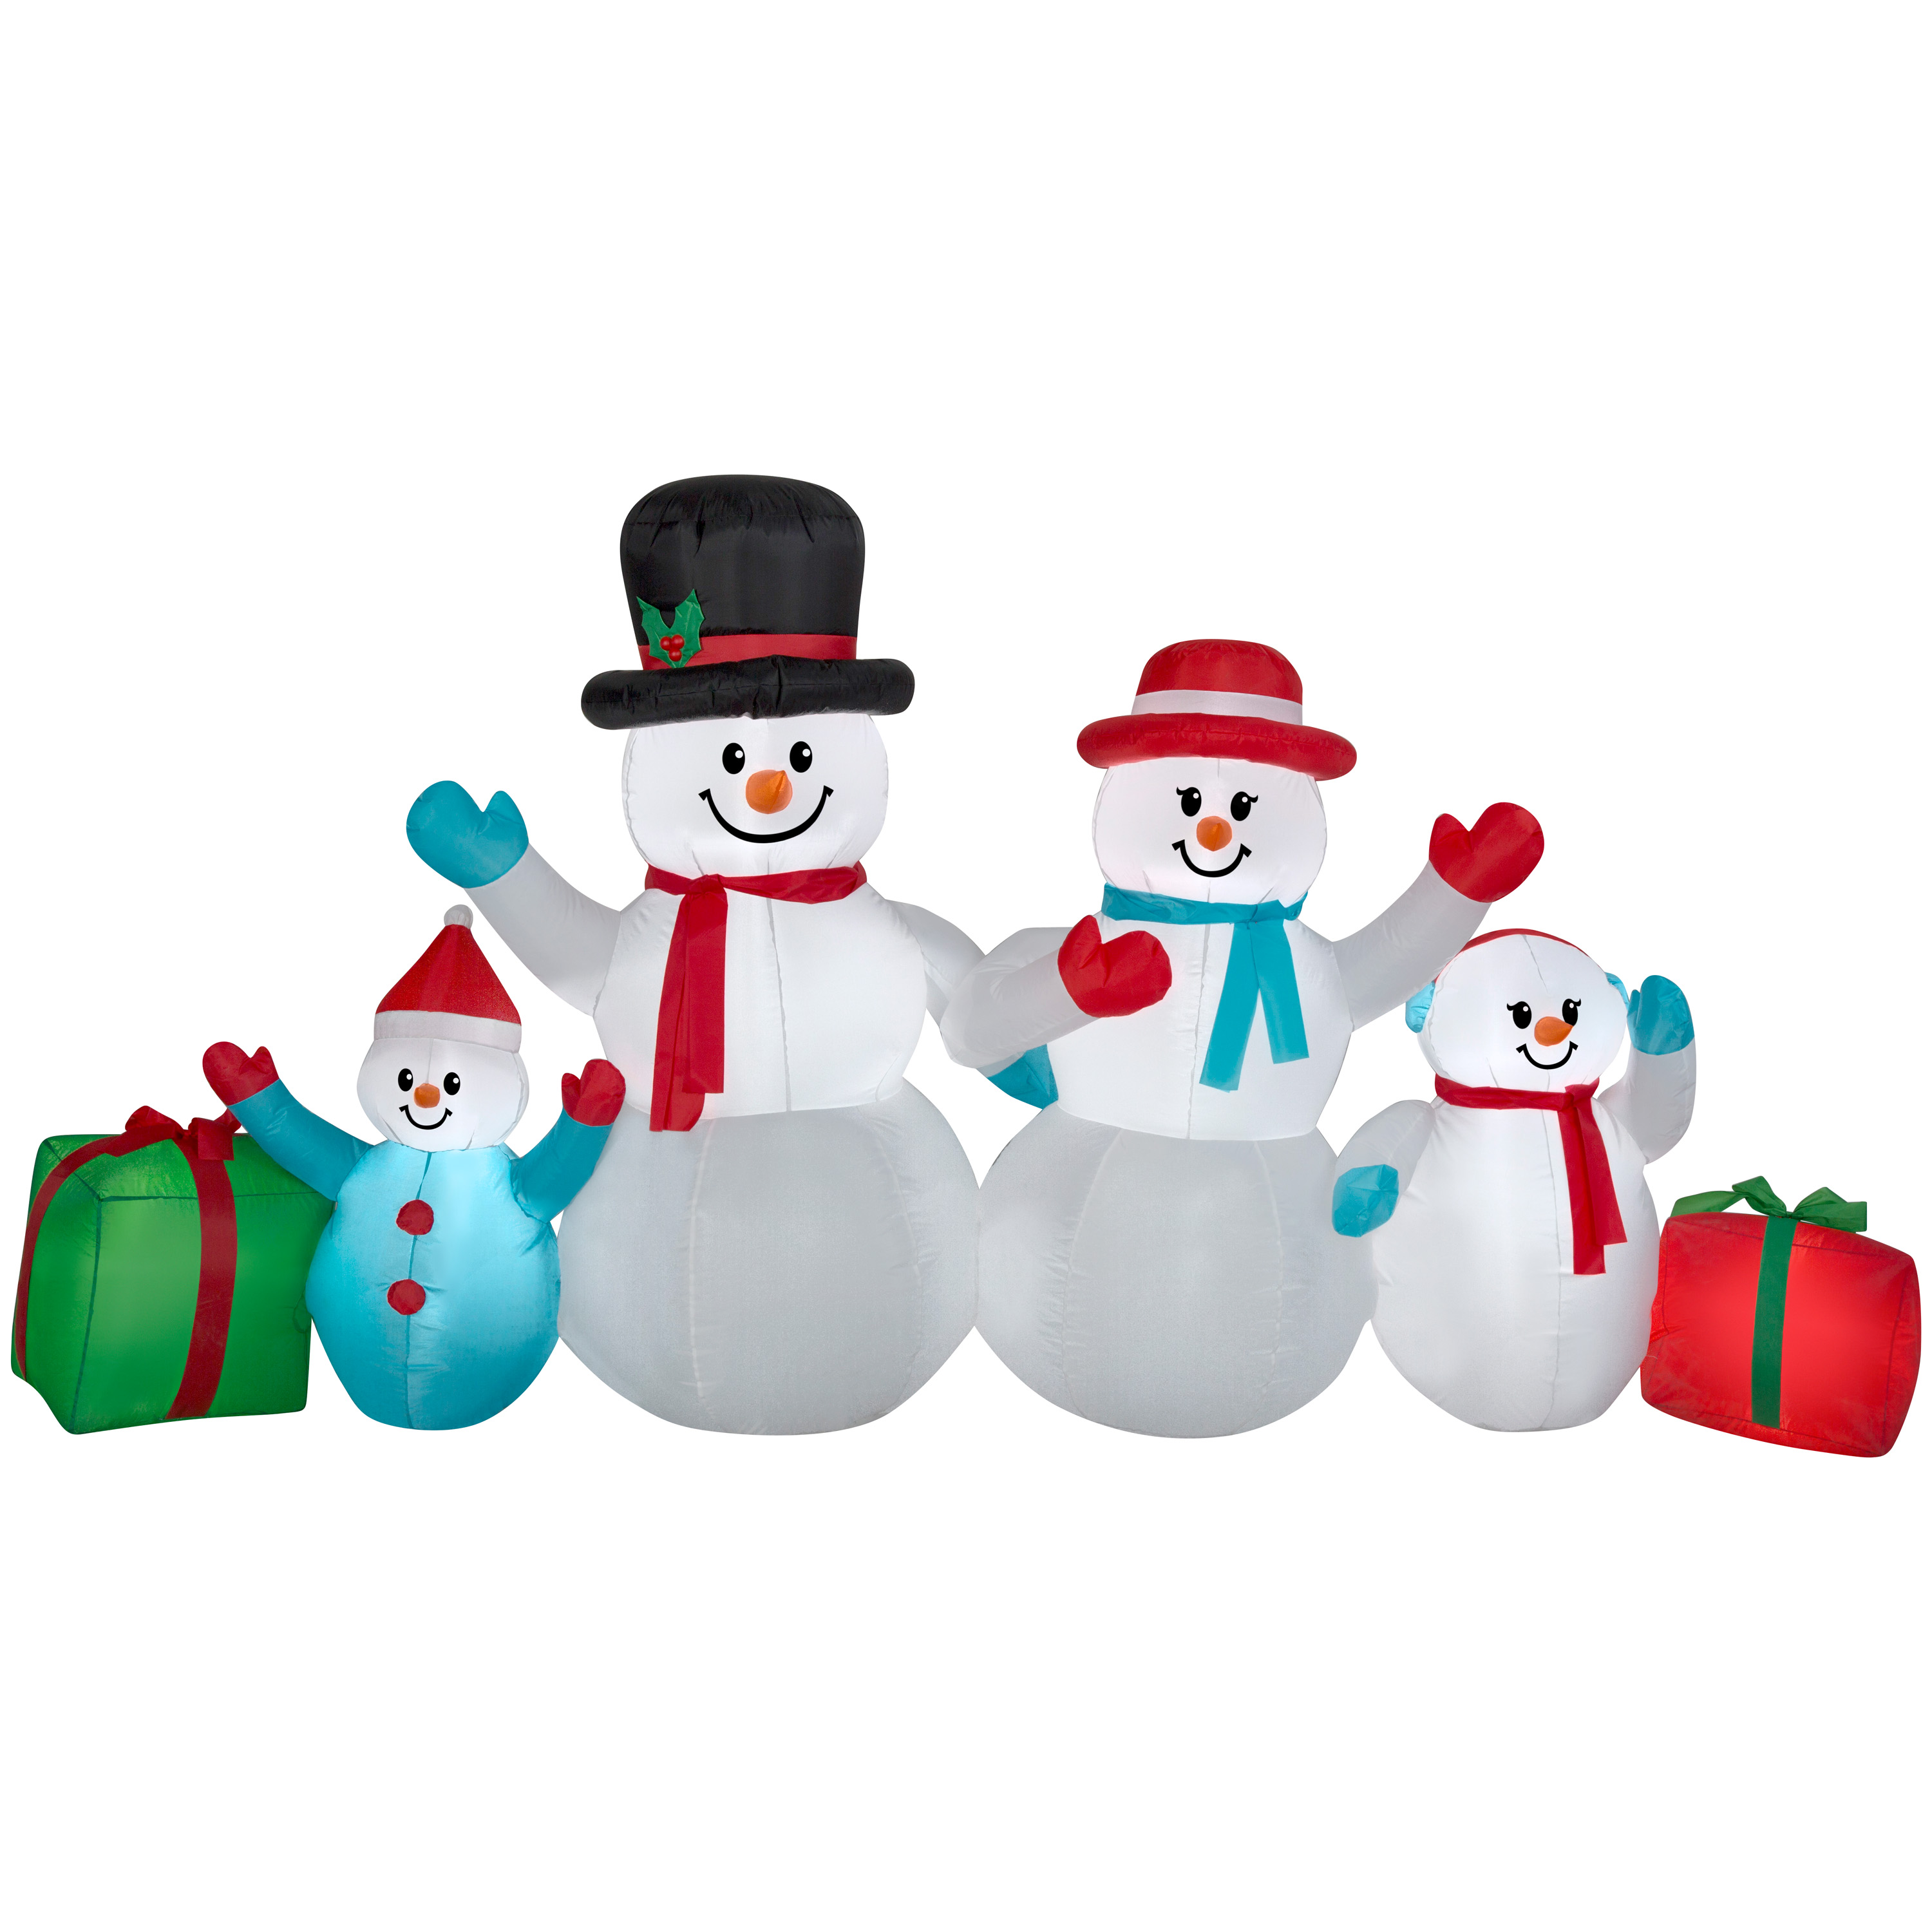 Image of Airblown Christmas Inflatable Winter Snowman Collection Scene 9' wide